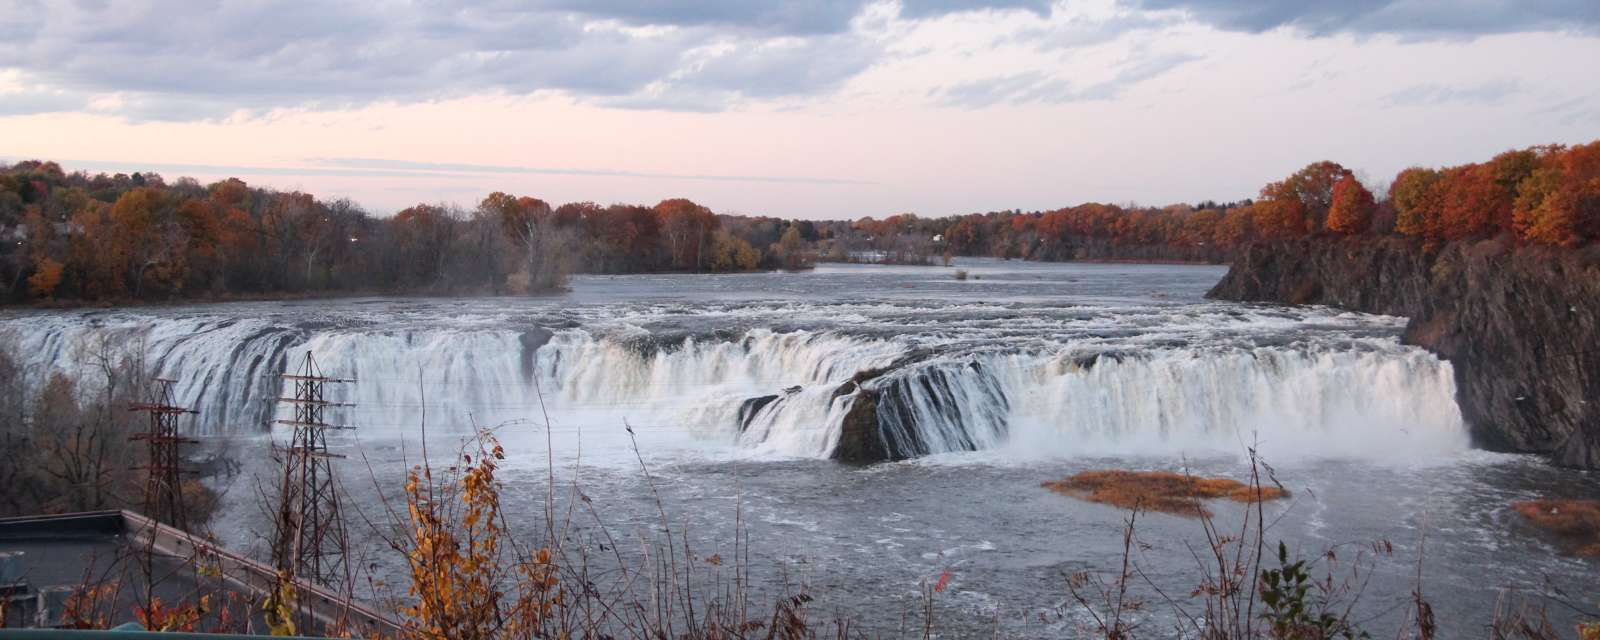 Cohoes Falls in Autumn